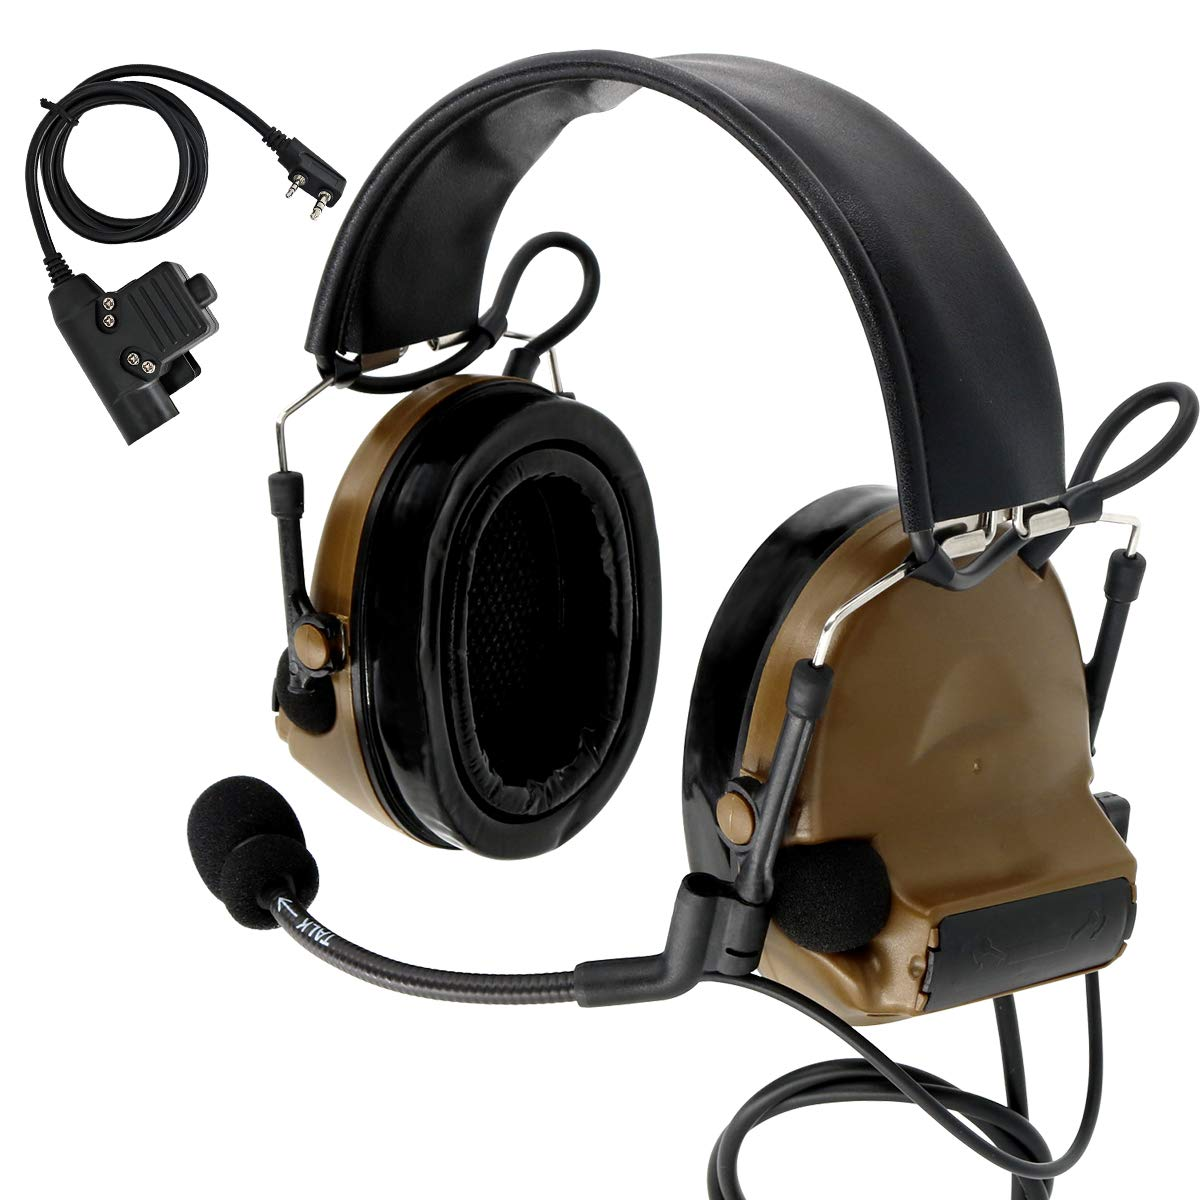 TAC-SKY COMTA II Tactical Headset Hearing Defender Noise Reduction Sound Pickup for Airsoft Sports by TAC-SKY